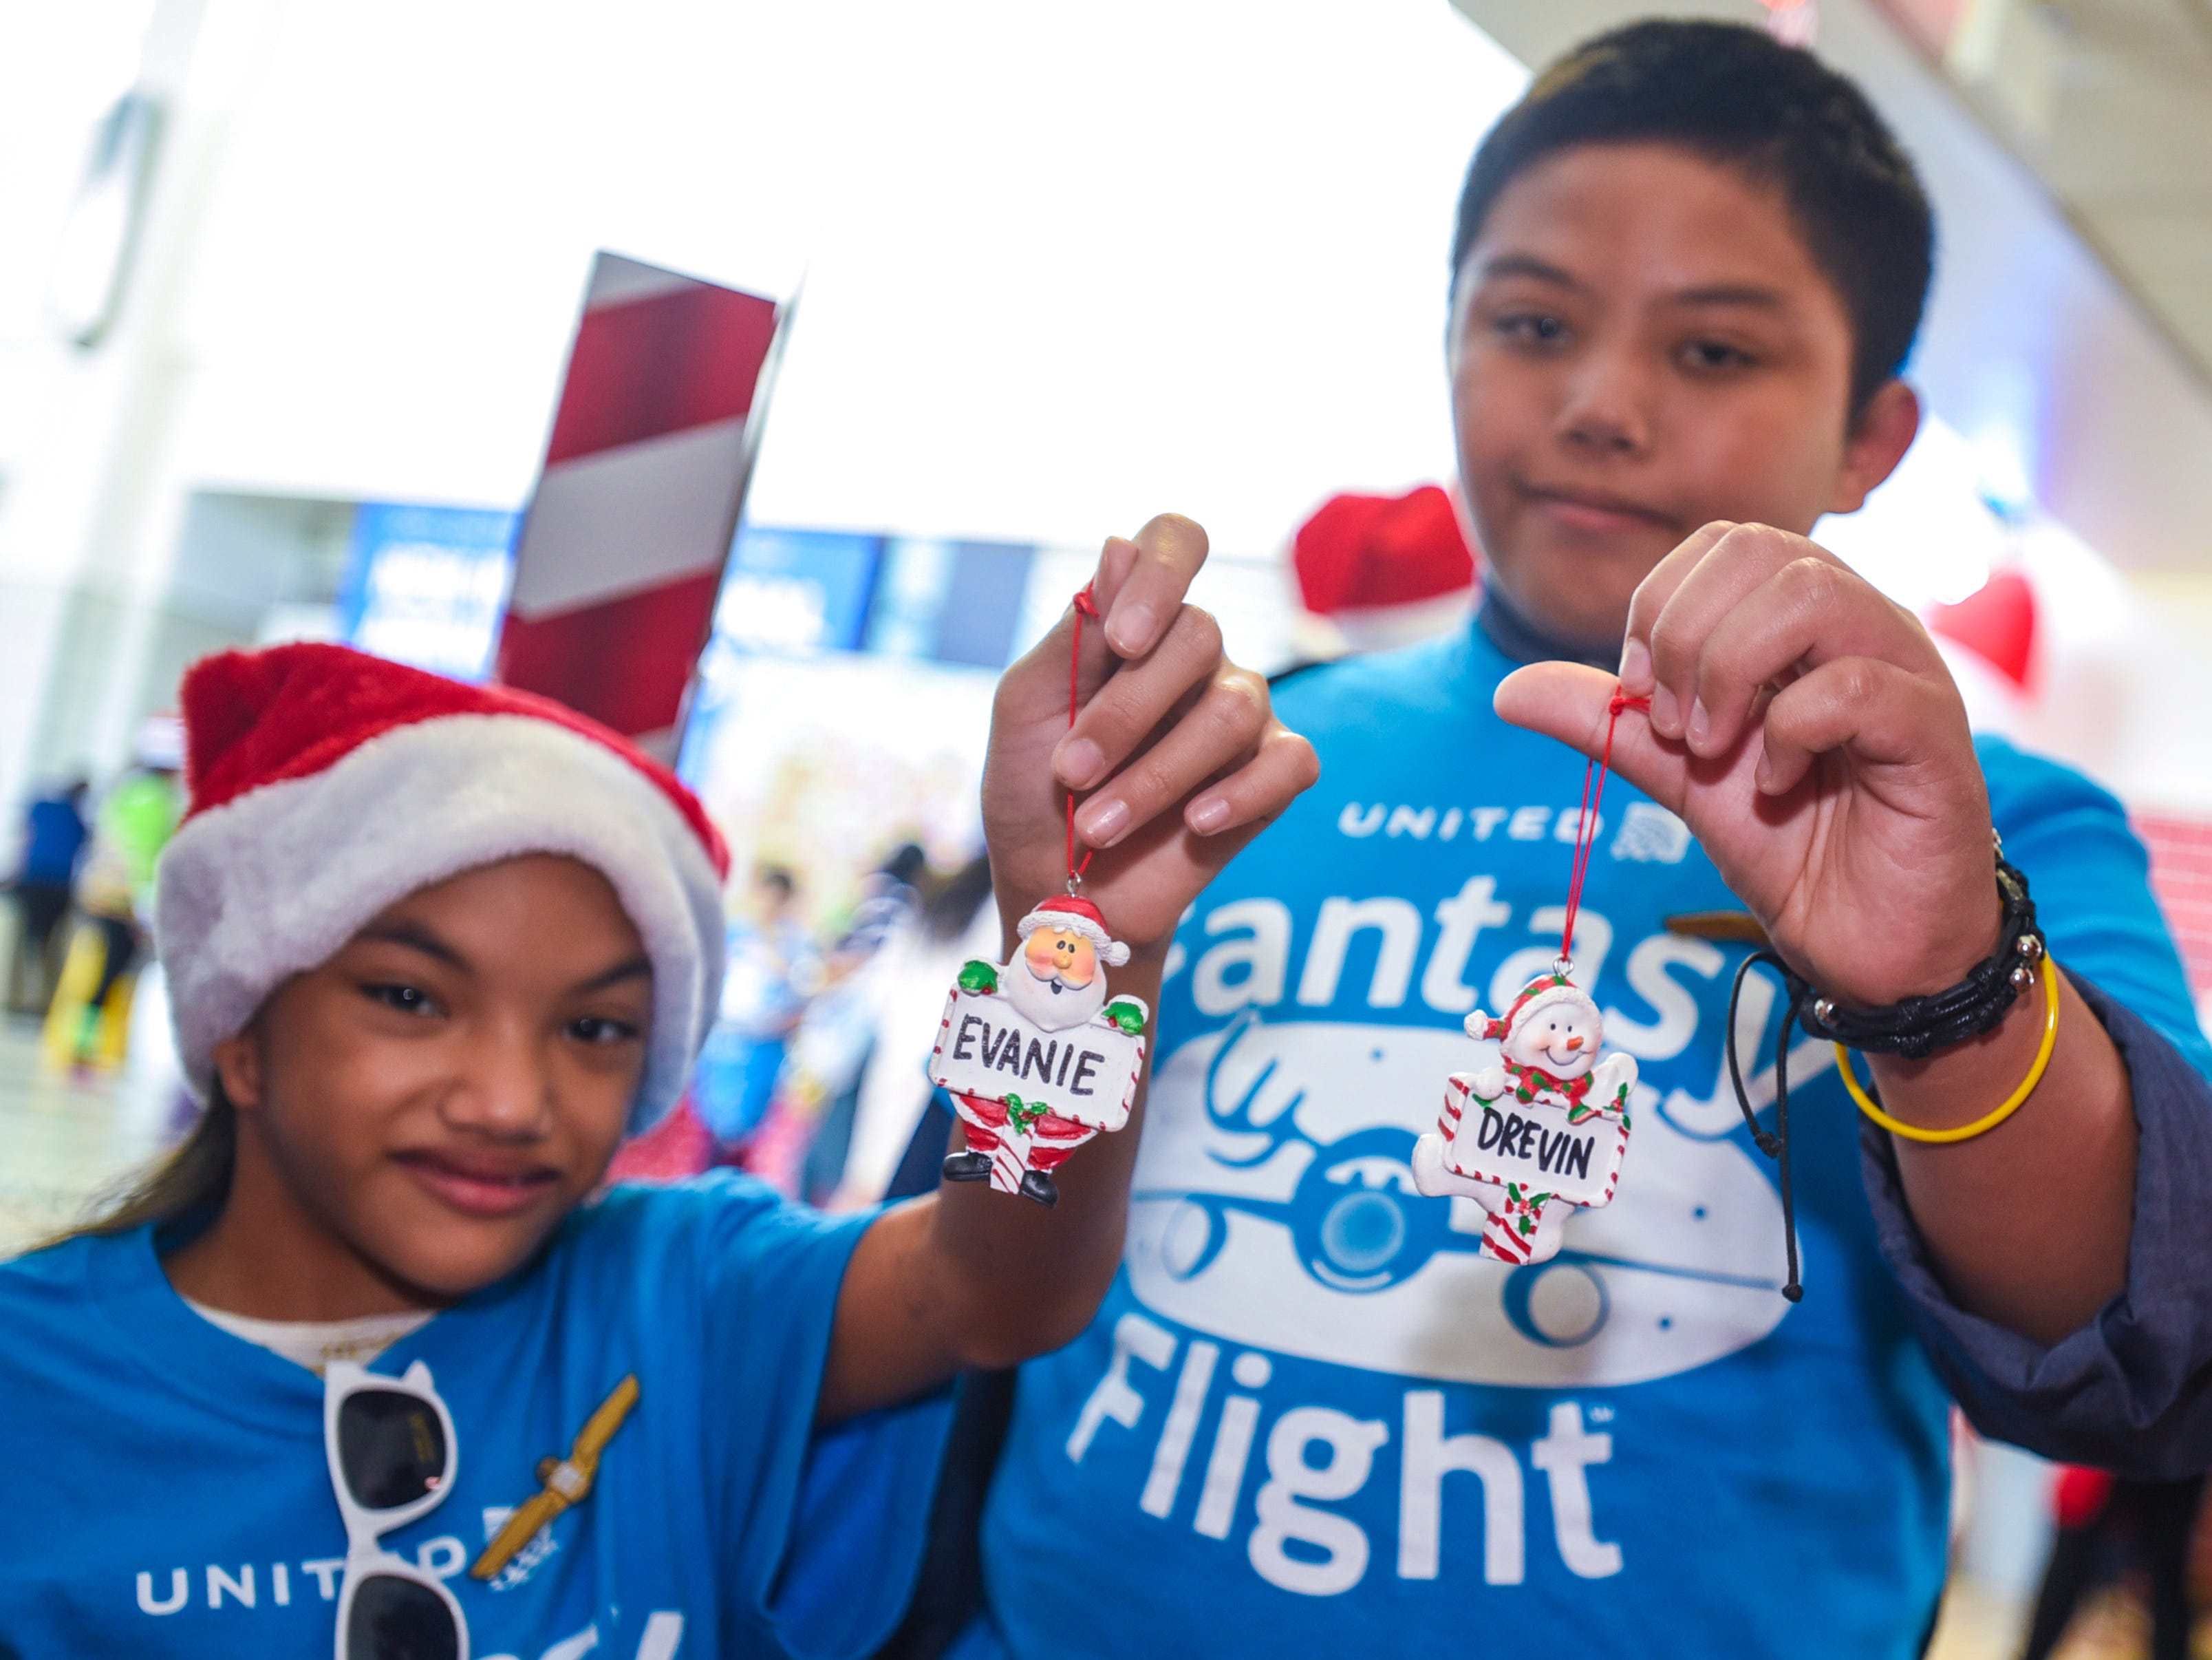 Siblings, Evanie and Drevin Blas, find personalized ornaments for them on a Christmas tree during United Airlines' Fantasy Flight to the North Pole at the A.B. Won Pat International Airport on Friday, Dec. 7, 2018. Thirty-three Guam Special Olympians, and their guests, were presented with an experience to enjoy live entertainment, food, games, holiday cookie decorating and face paintings after a make-believe flight to visit Santa Claus and his helpers. The event was the air carrier's fifth consecutive year of sharing holiday cheer with a group of the island's deserving children. This year, the airline's Guam hub was joined by 15 other United destinations around the globe in celebrating the holiday event.